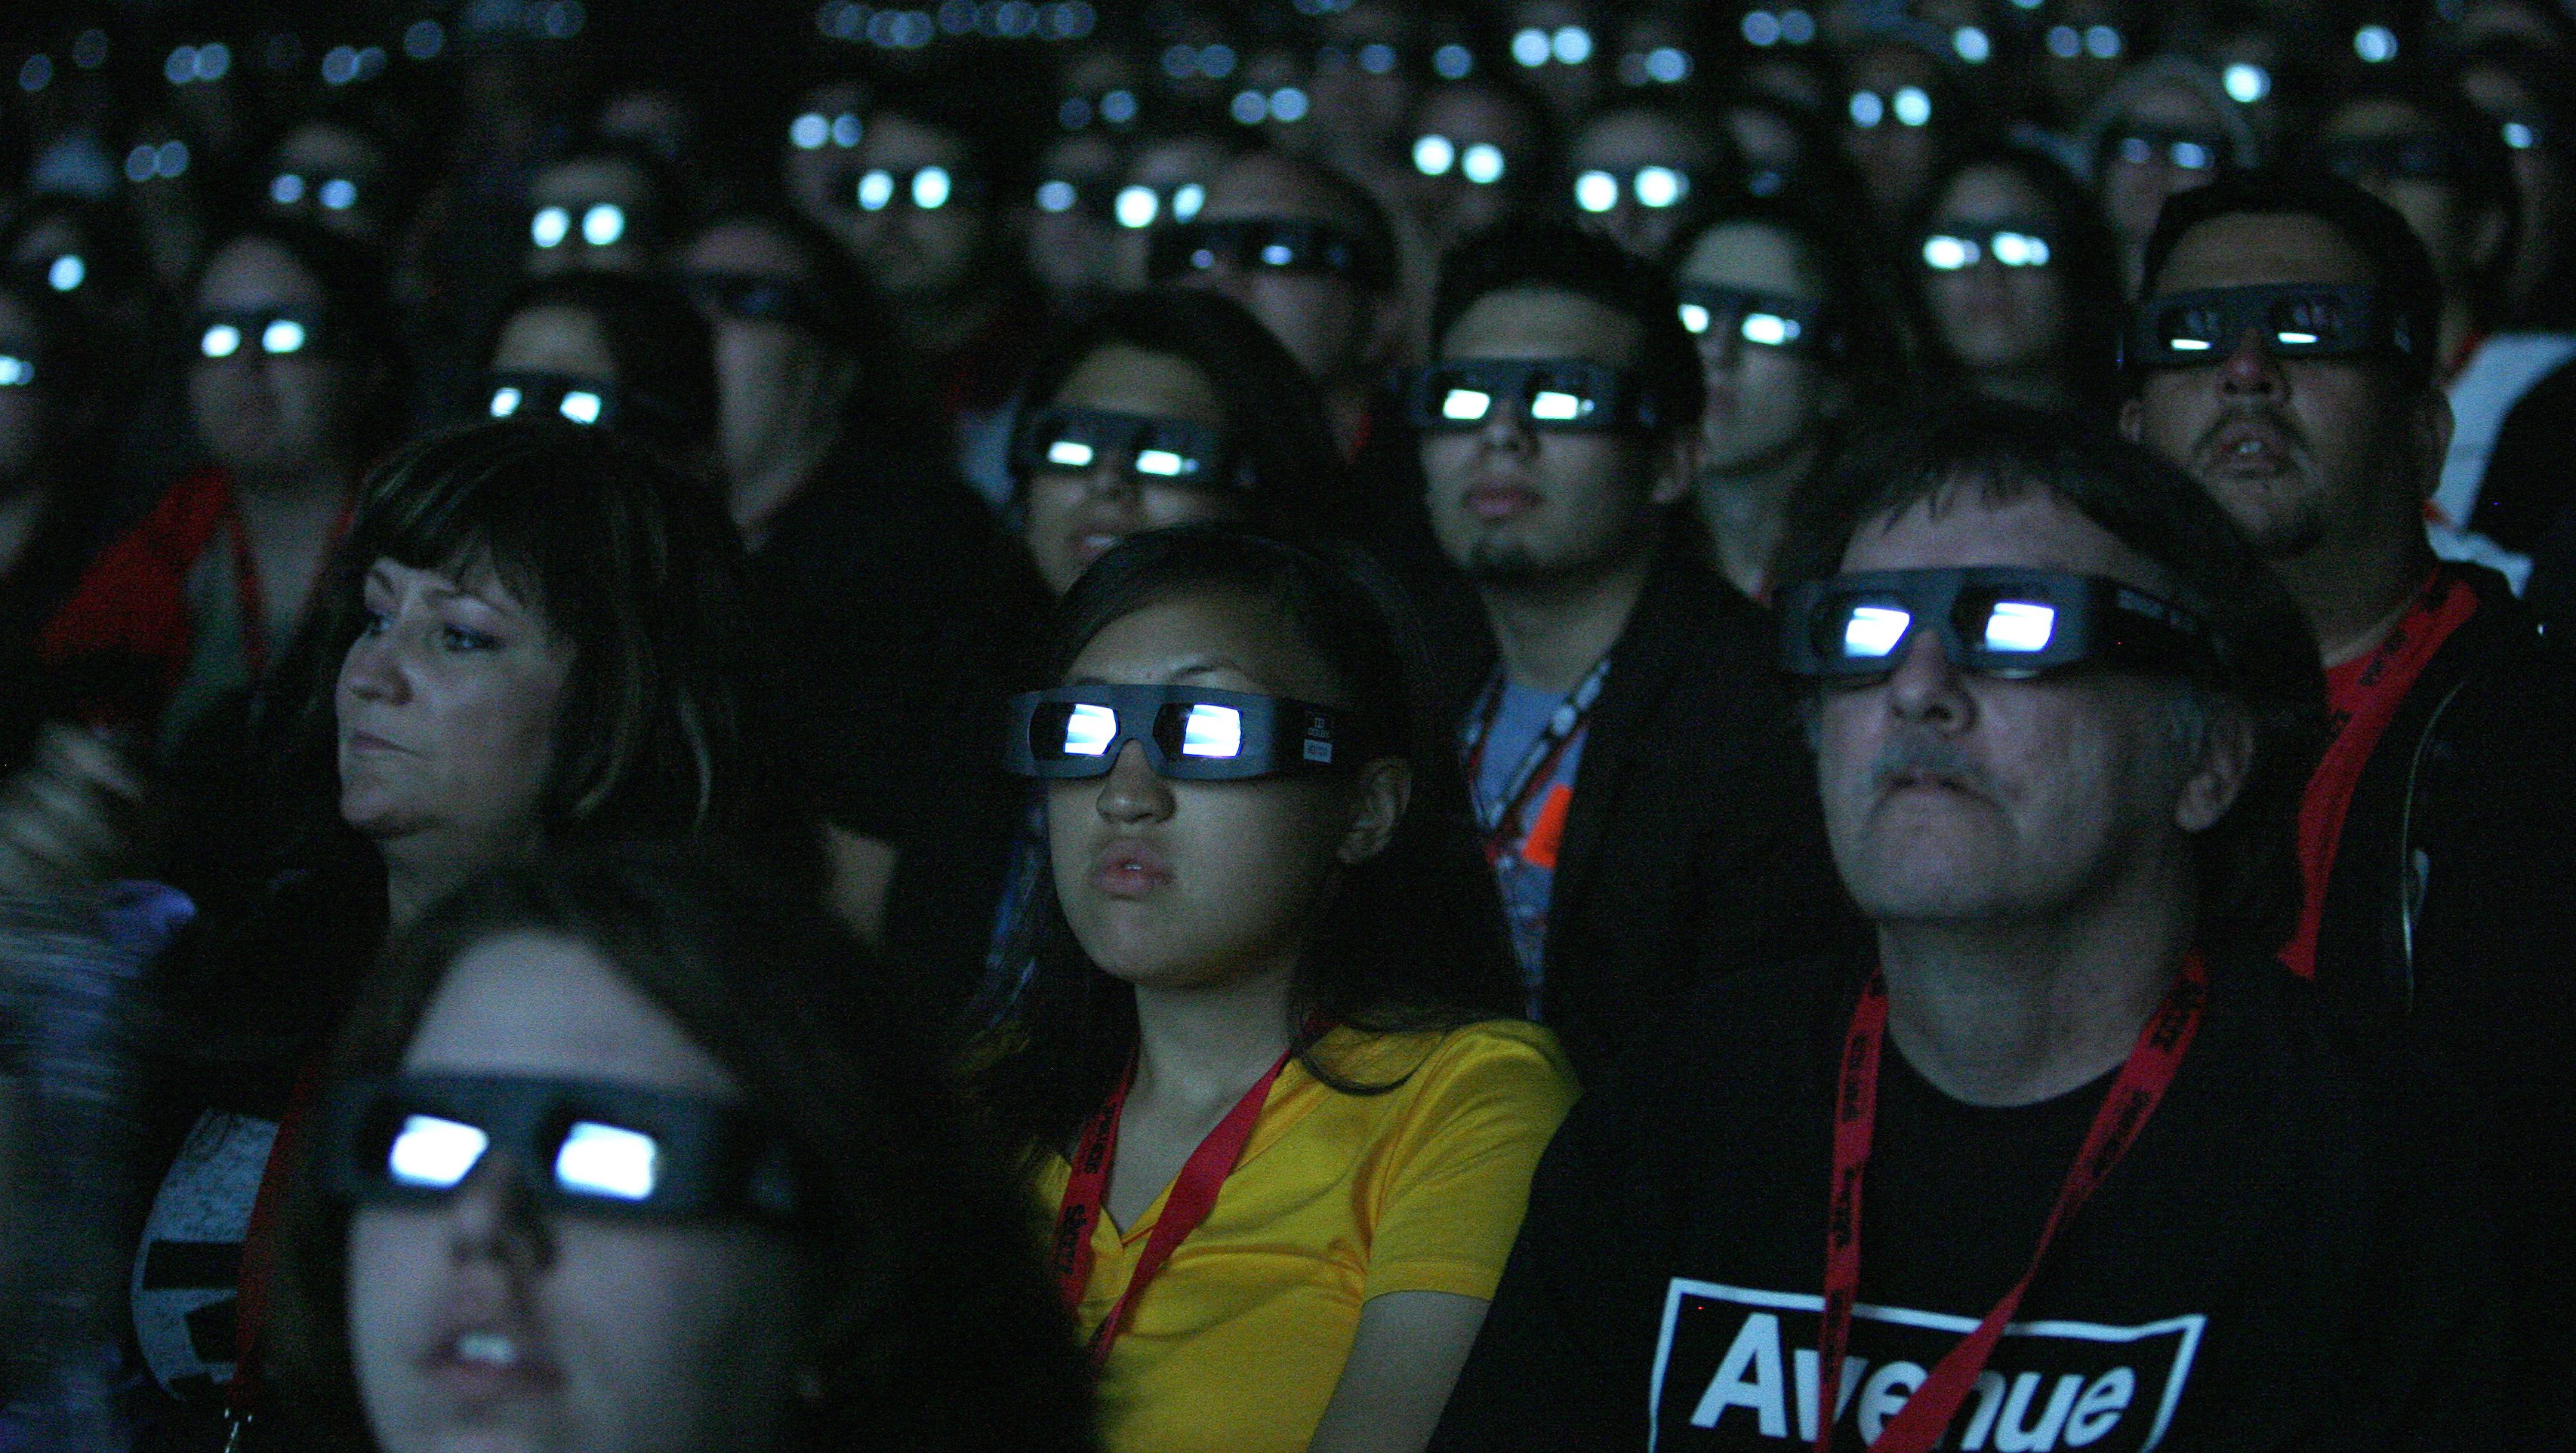 cc174dd9d4 Americans are losing interest in 3D movies